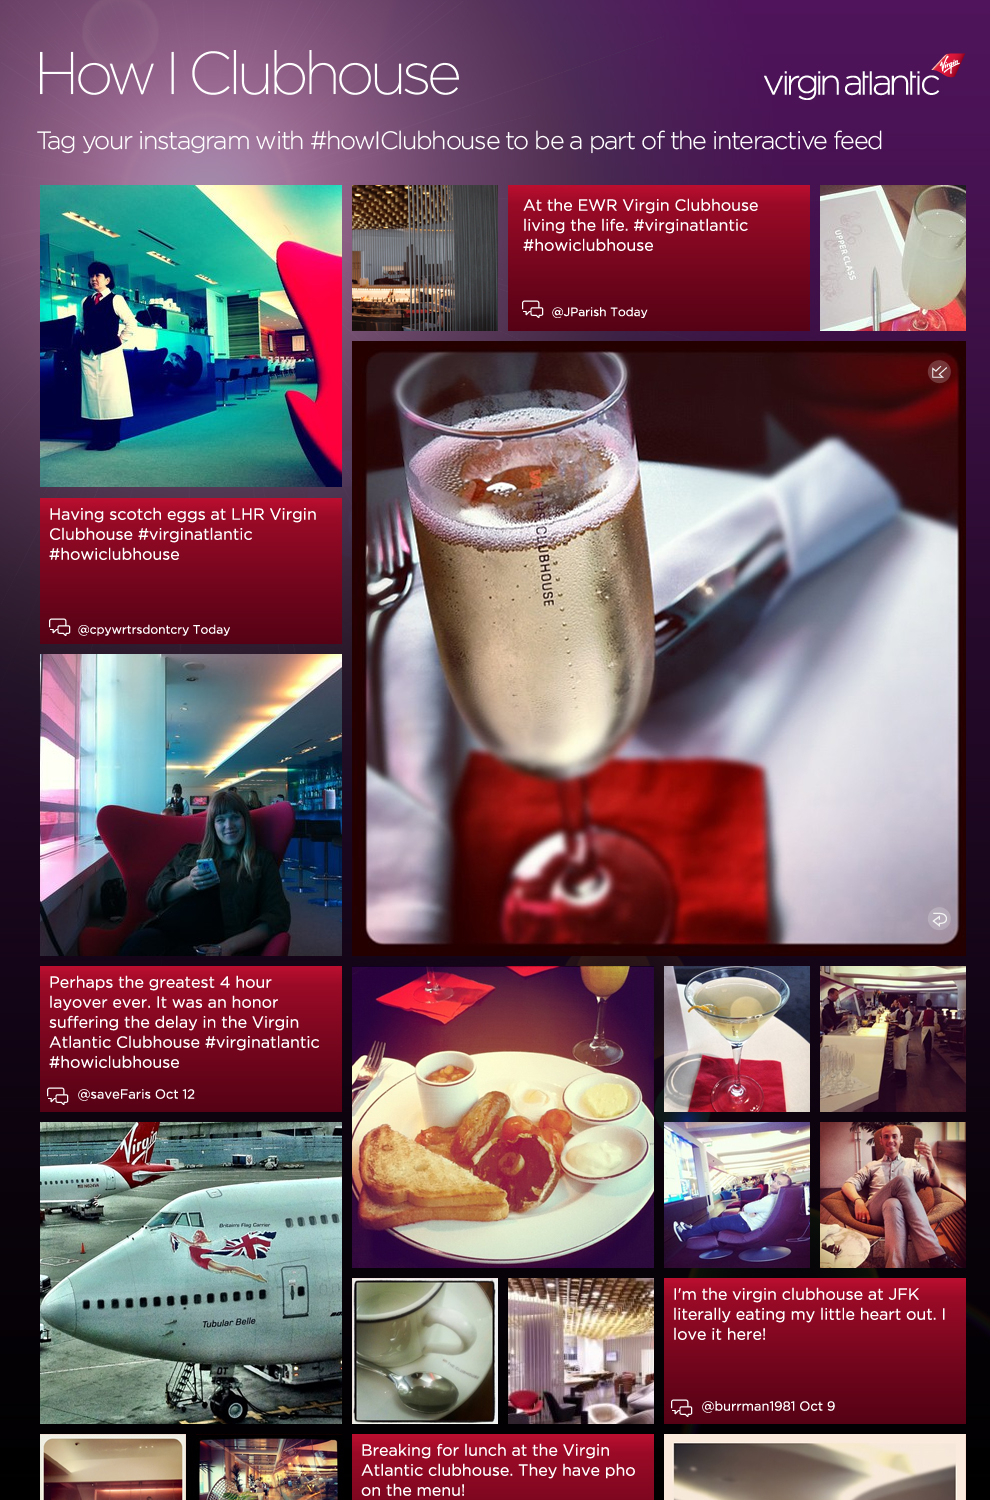 02_VirginAtlantic_Instagram_Open.jpg